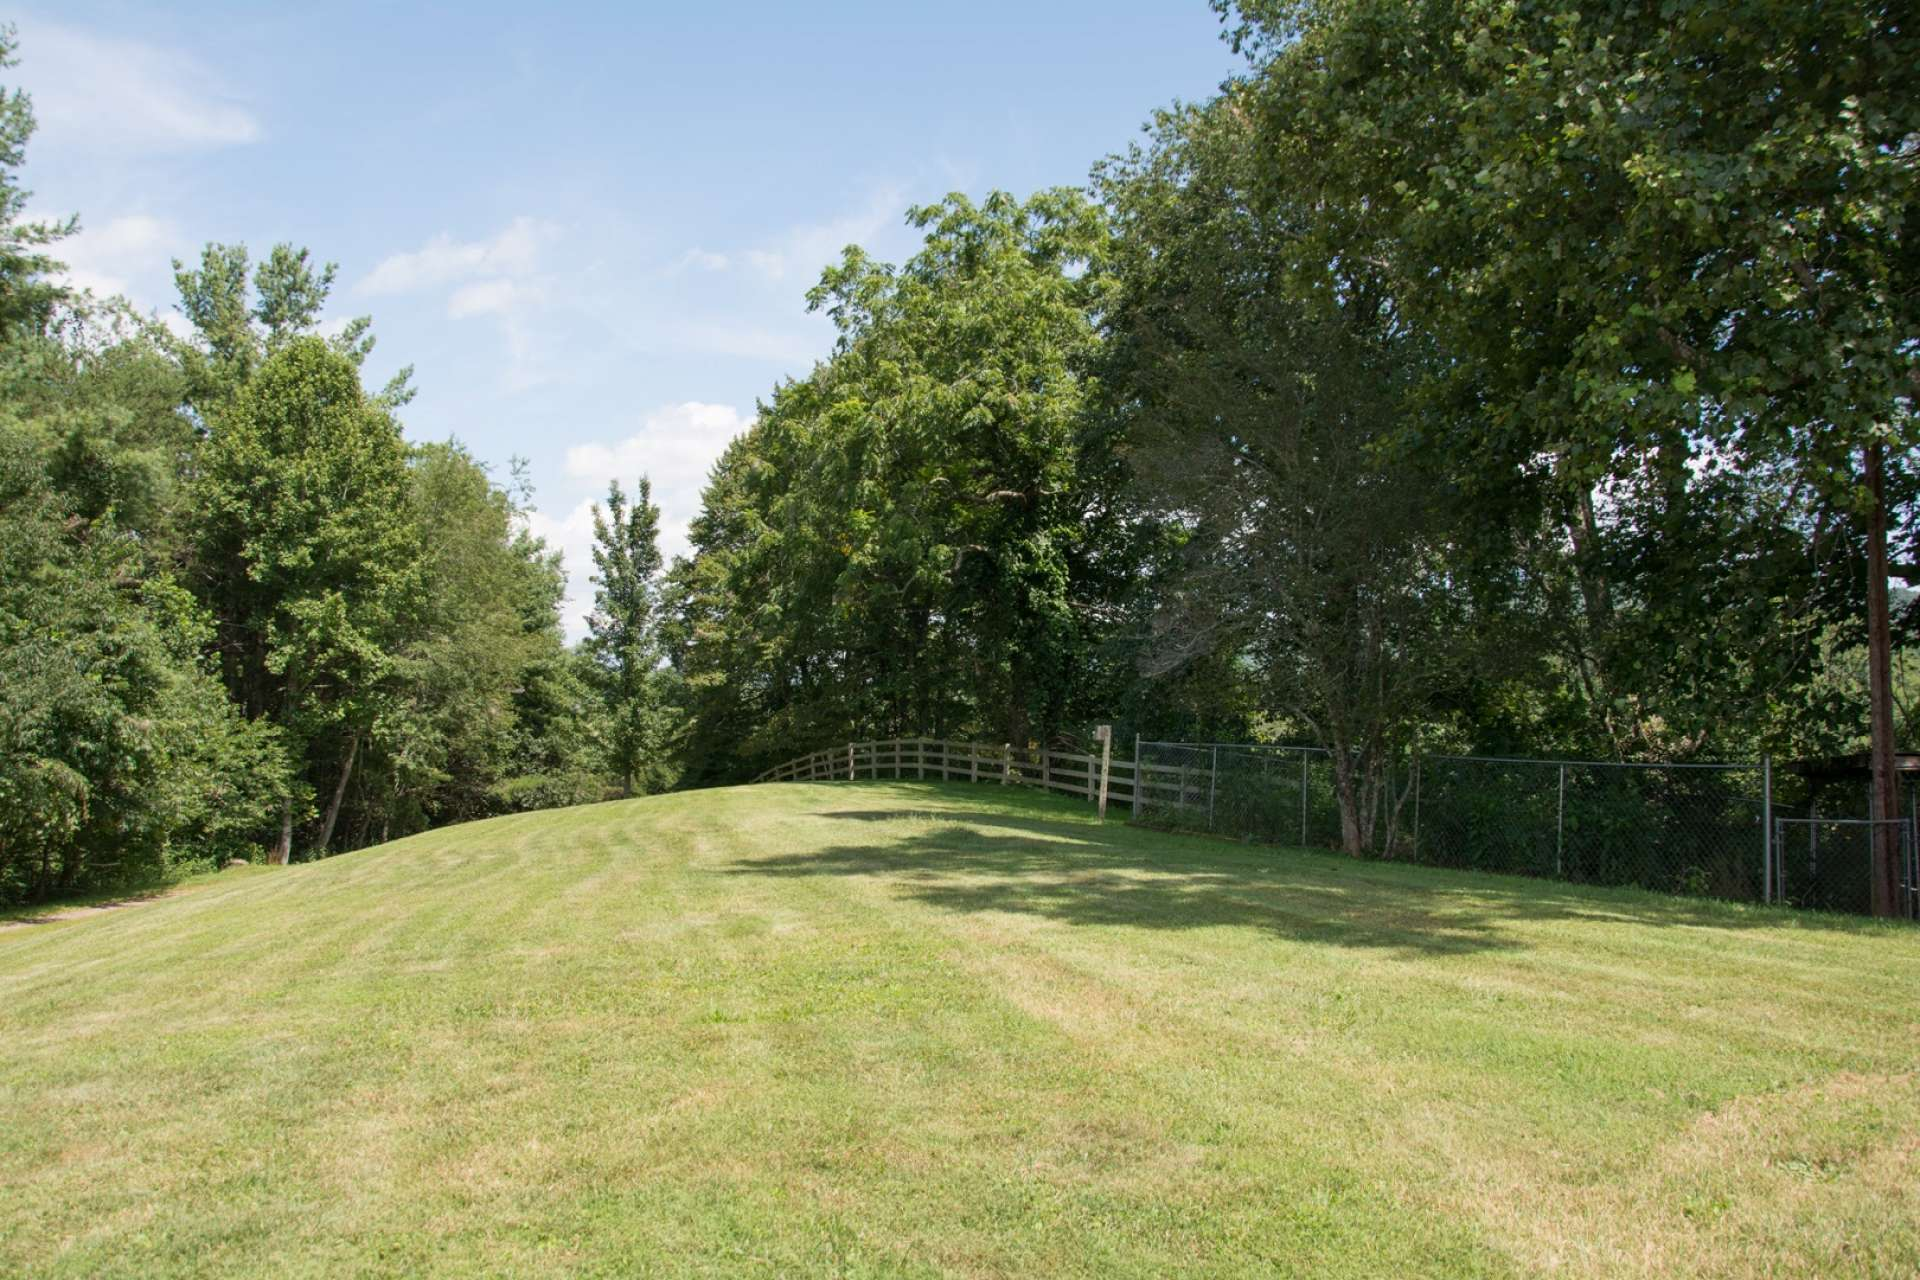 The 18 acre setting offers lots of green space for crops, gardens, play, or livestock. Serene woodlands, with a diverse mixture of native hardwoods, evergreens and beautiful mountain foliage, offer plenty of exploration and/or hunting opportunities.